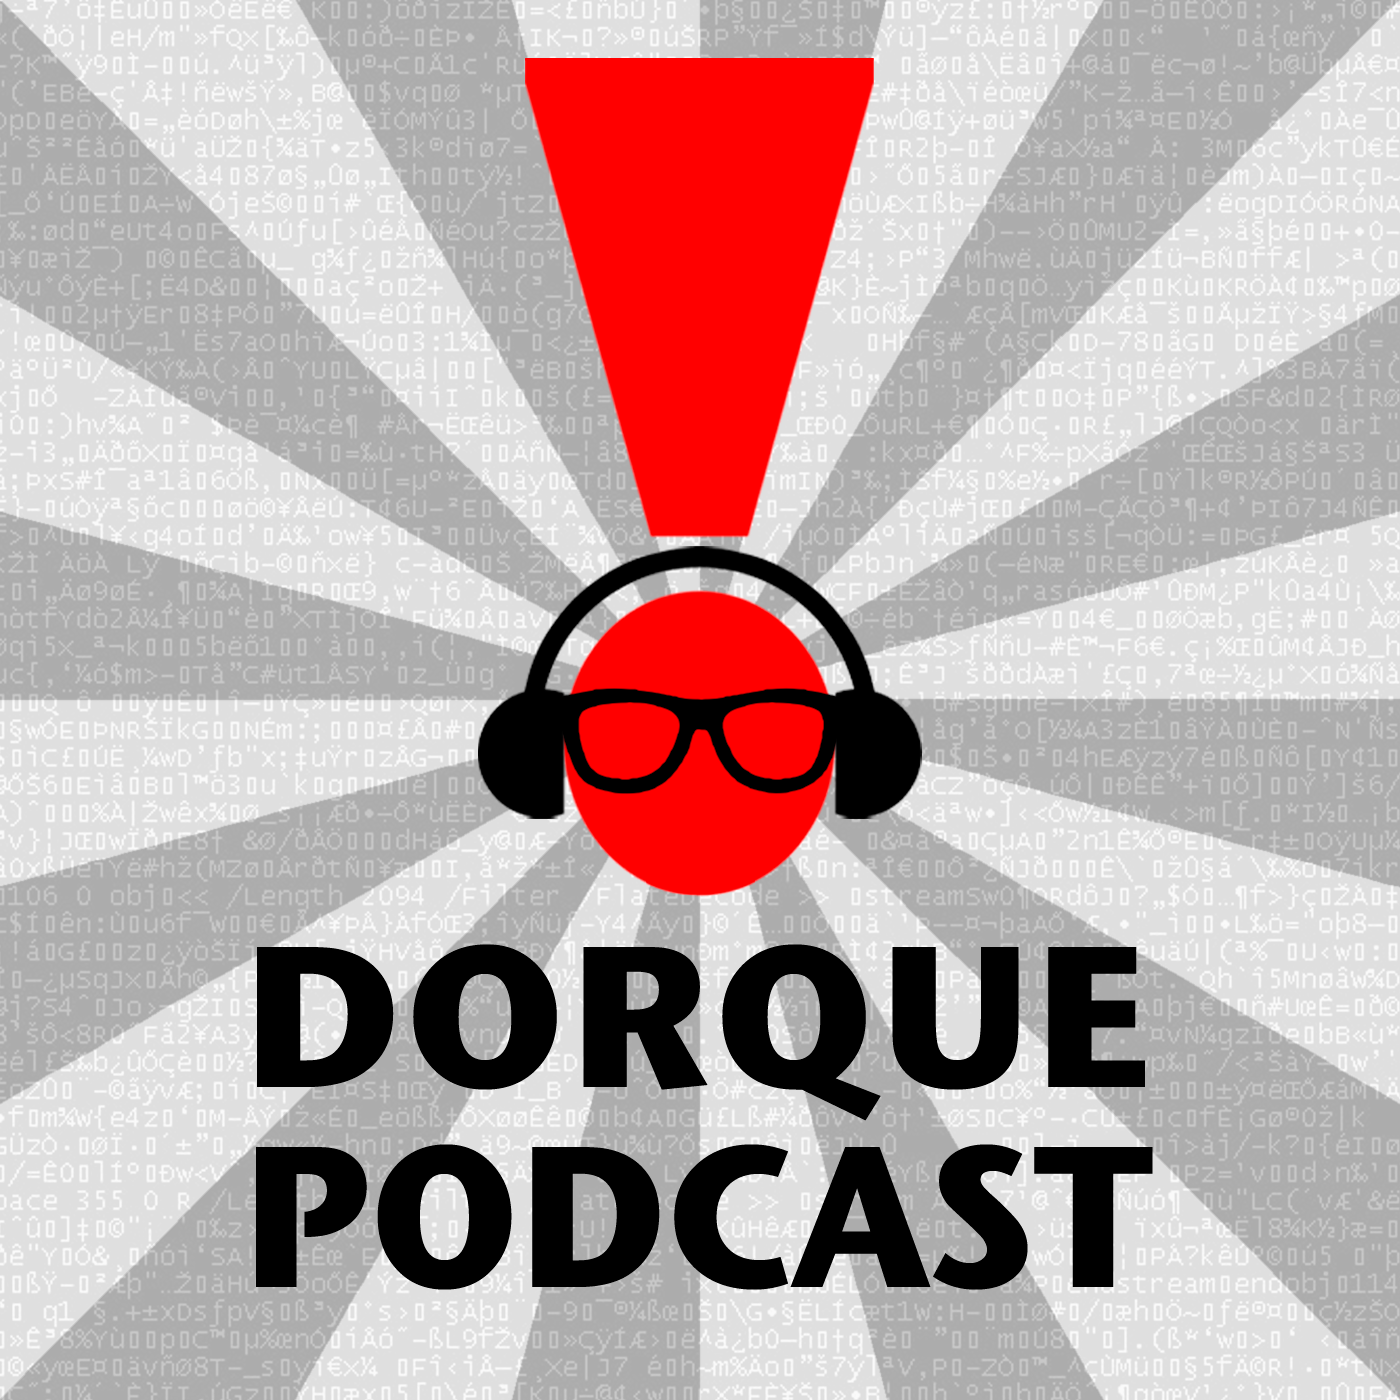 Dorque Podcast